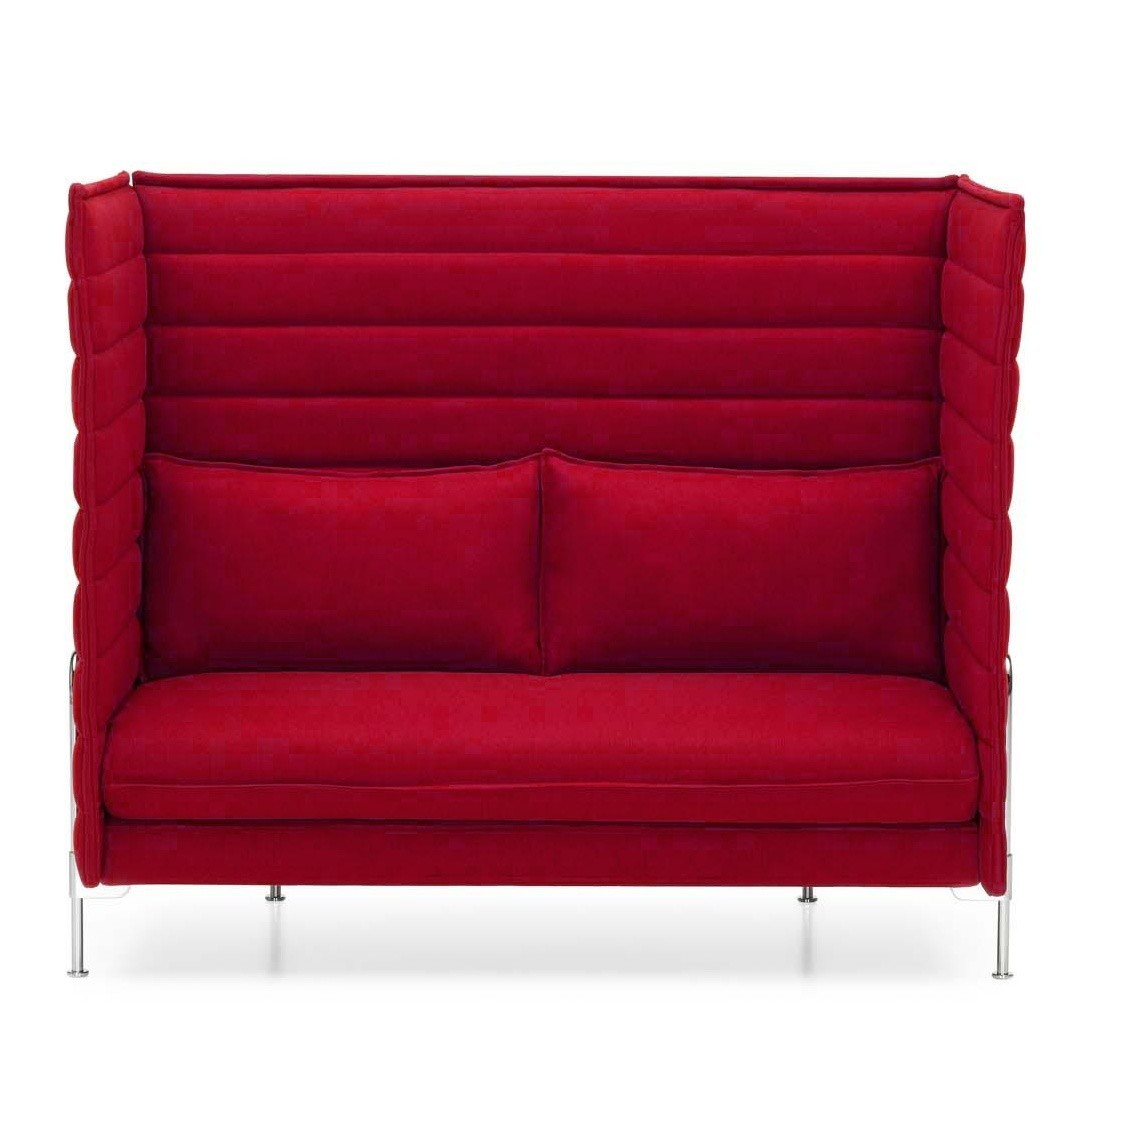 Vitra Alcove Highback 2 Seater Sofa